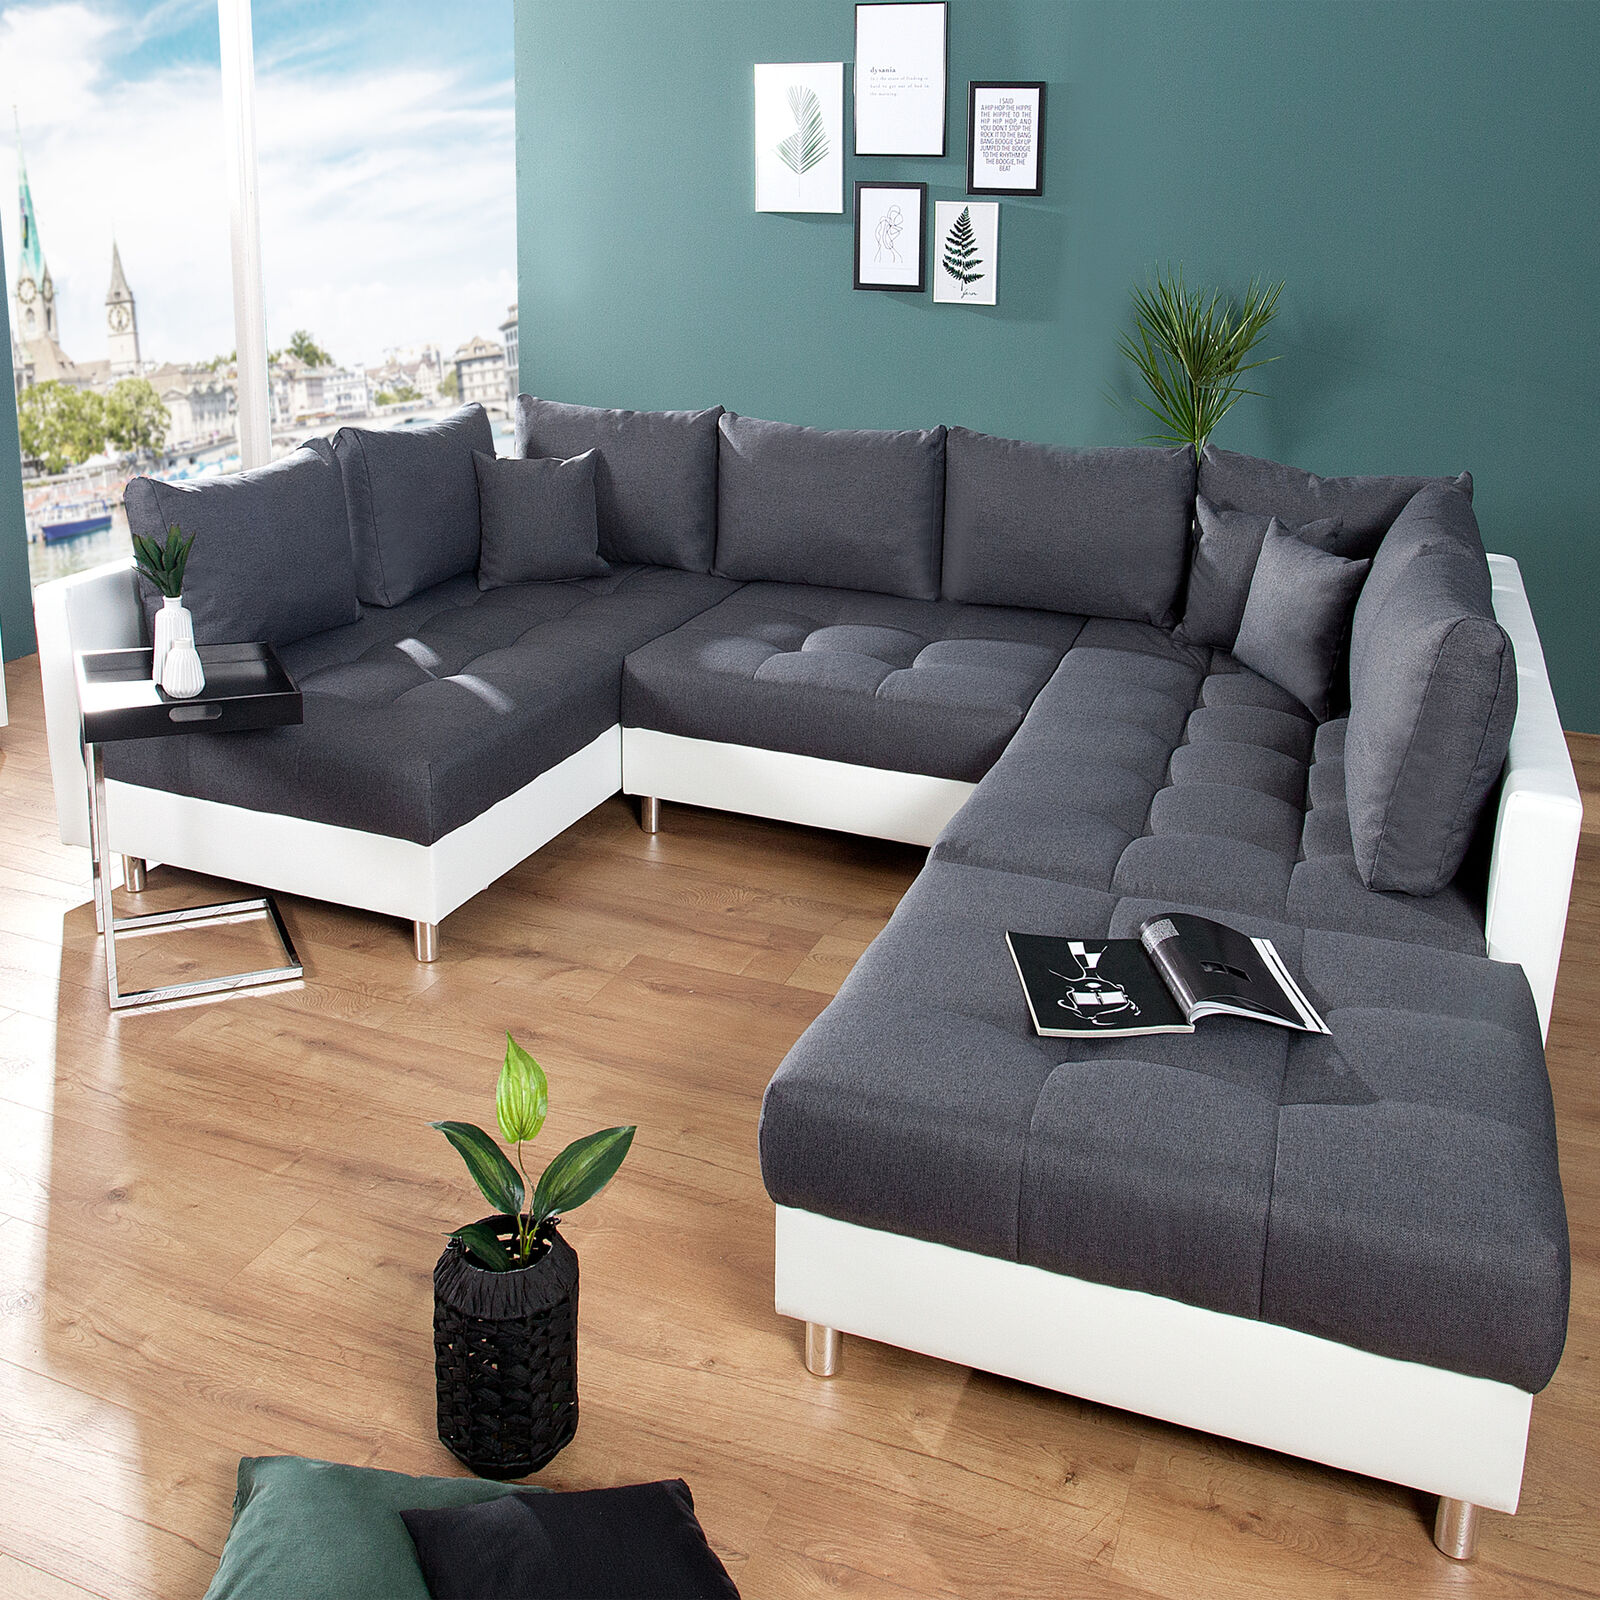 xxl wohnlandschaft kent 305 cm inkl hocker couch sofa u sofa federkern eur 699 95 picclick de. Black Bedroom Furniture Sets. Home Design Ideas